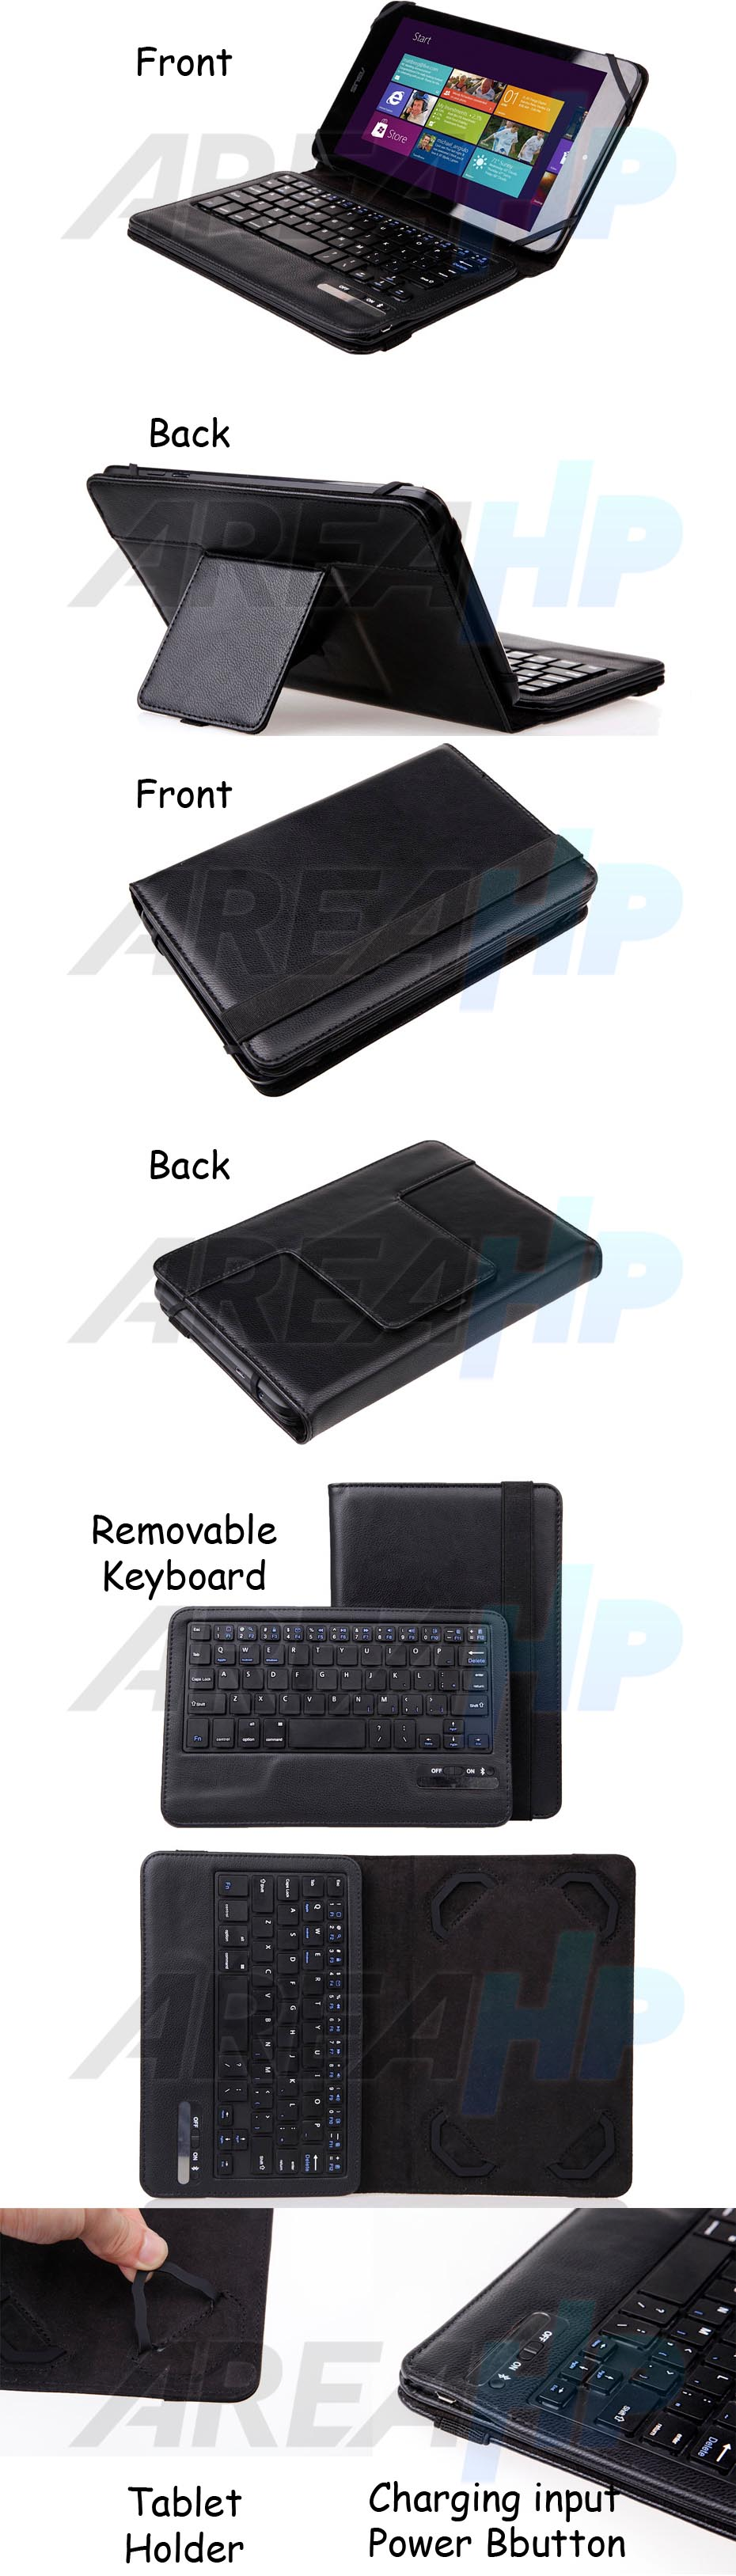 Seenda Universal Keyboard Bluetooth Case for Tablet 7-8 Inch Overview